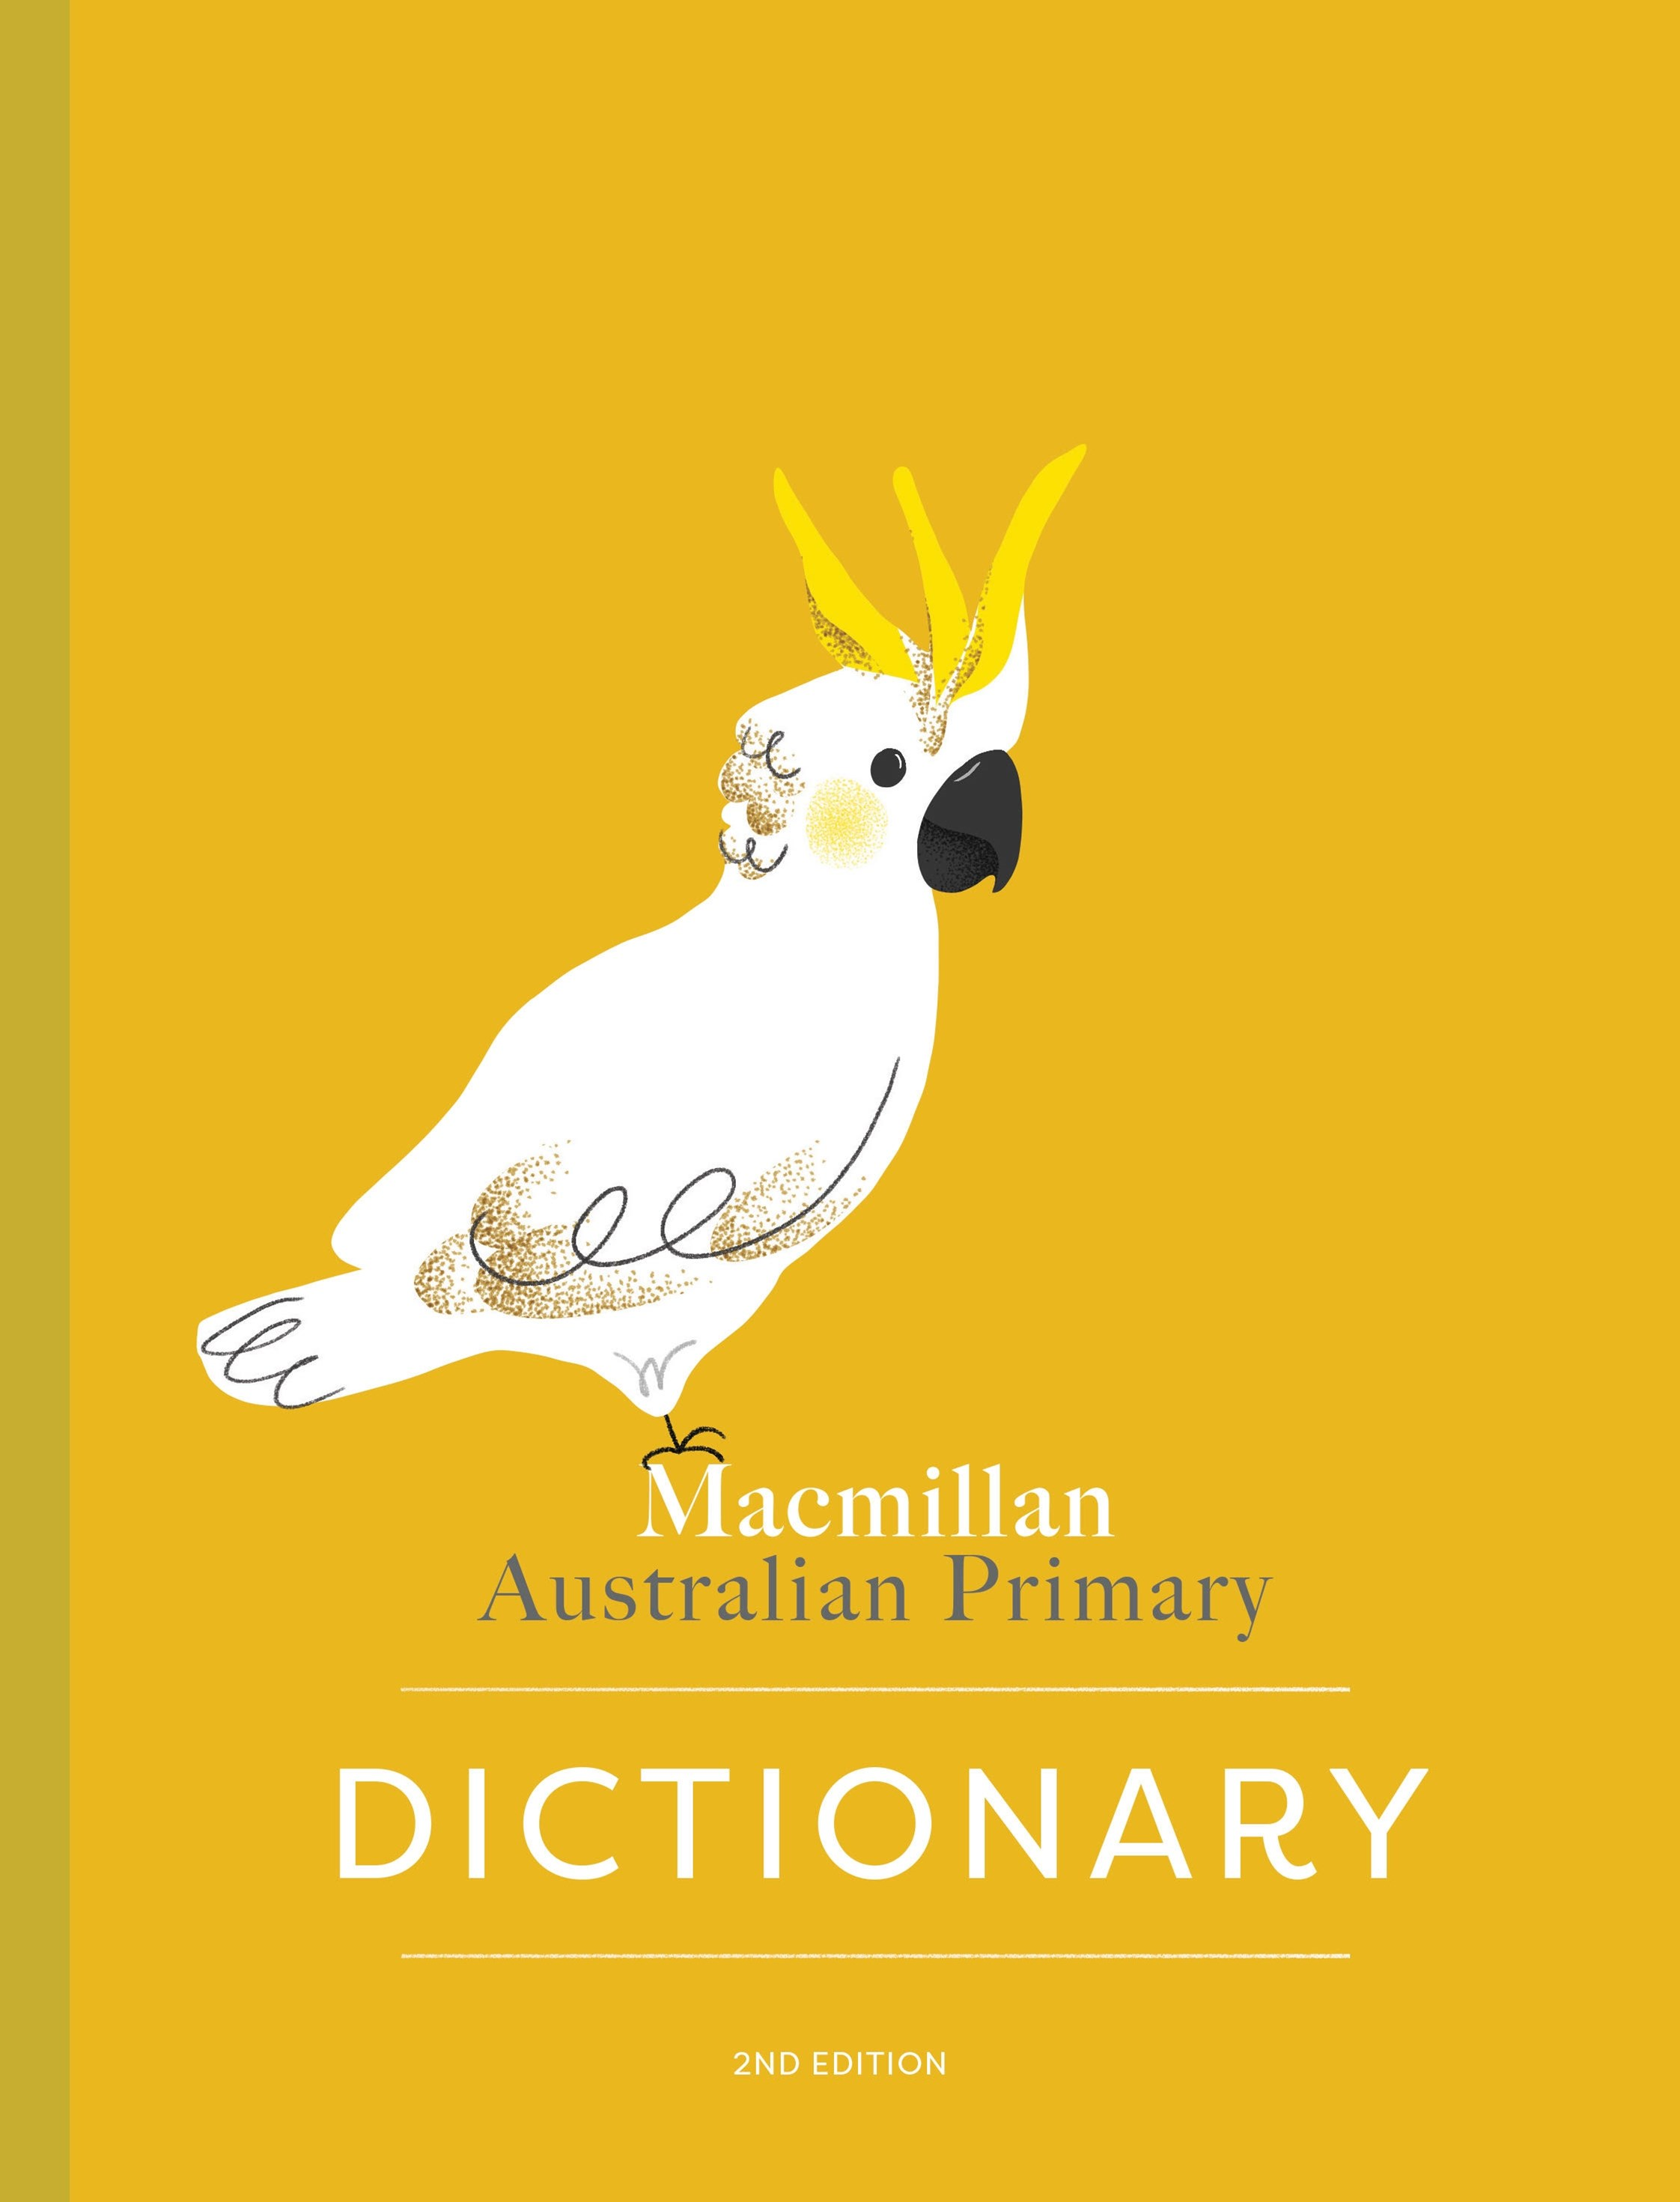 Macmillan Australian Primary Dictionary 2nd Edition